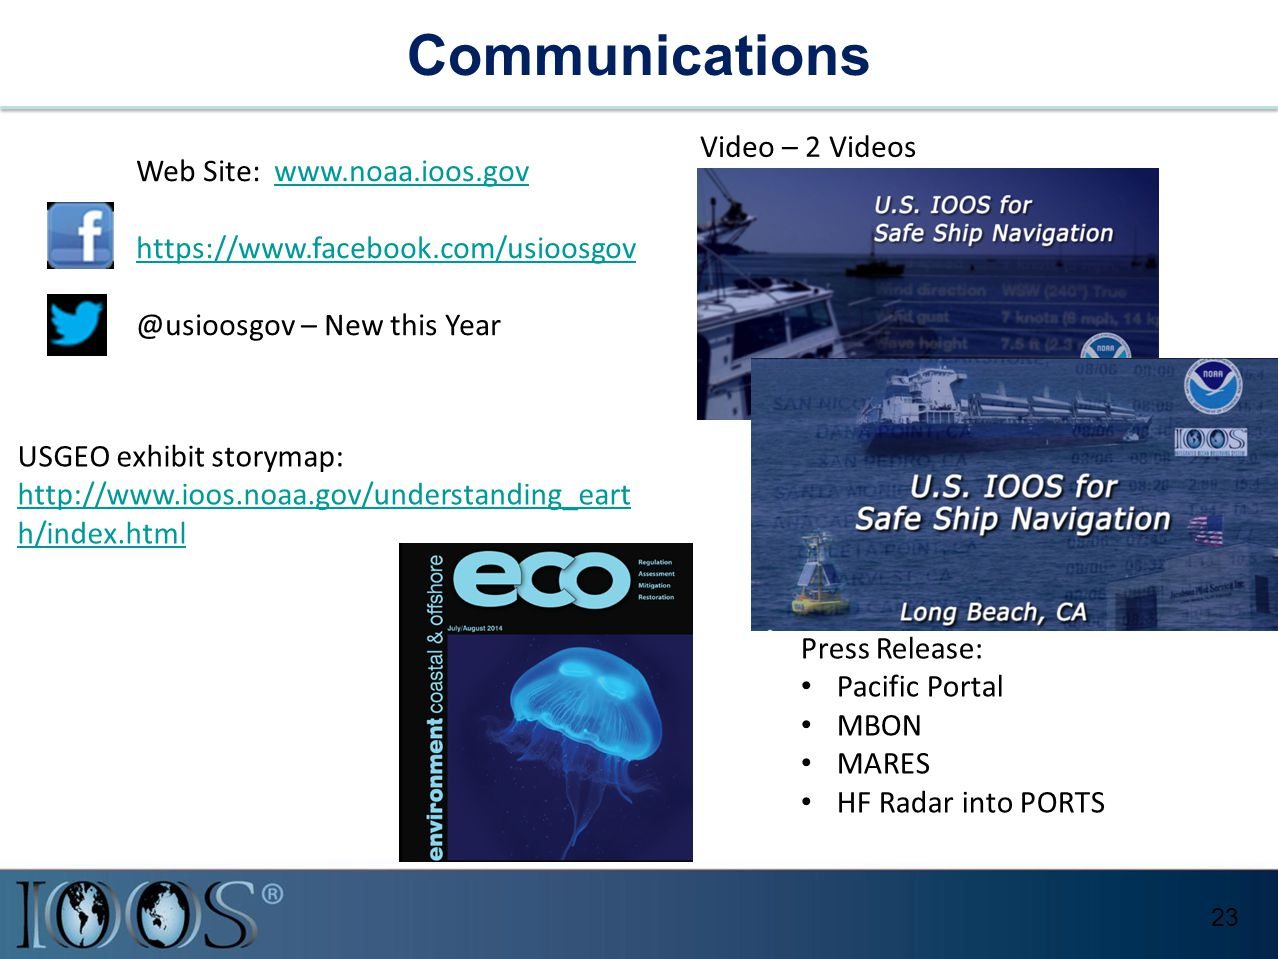 Communications 23 Web Site: www.noaa.ioos.govwww.noaa.ioos.gov https://www.facebook.com/usioosgov @usioosgov – New this Year USGEO exhibit storymap: http://www.ioos.noaa.gov/understanding_eart h/index.html http://www.ioos.noaa.gov/understanding_eart h/index.html Press Release: Pacific Portal MBON MARES HF Radar into PORTS Video – 2 Videos